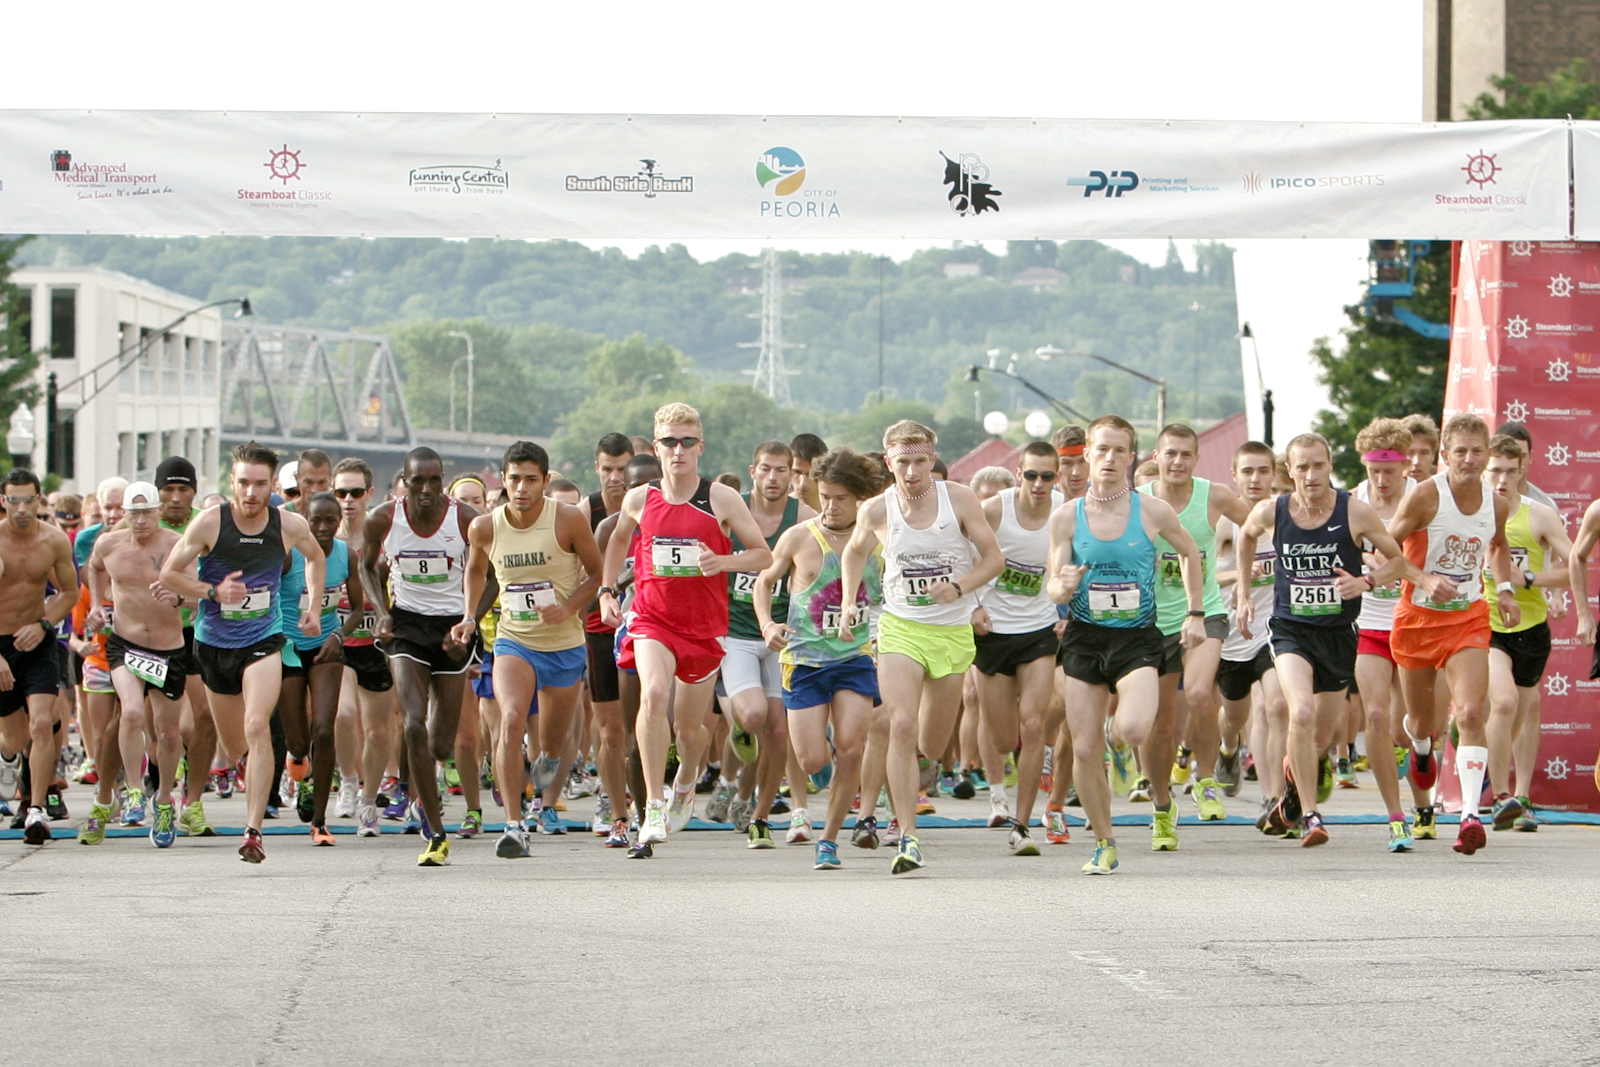 2014 Steamboat Classic Starting Line